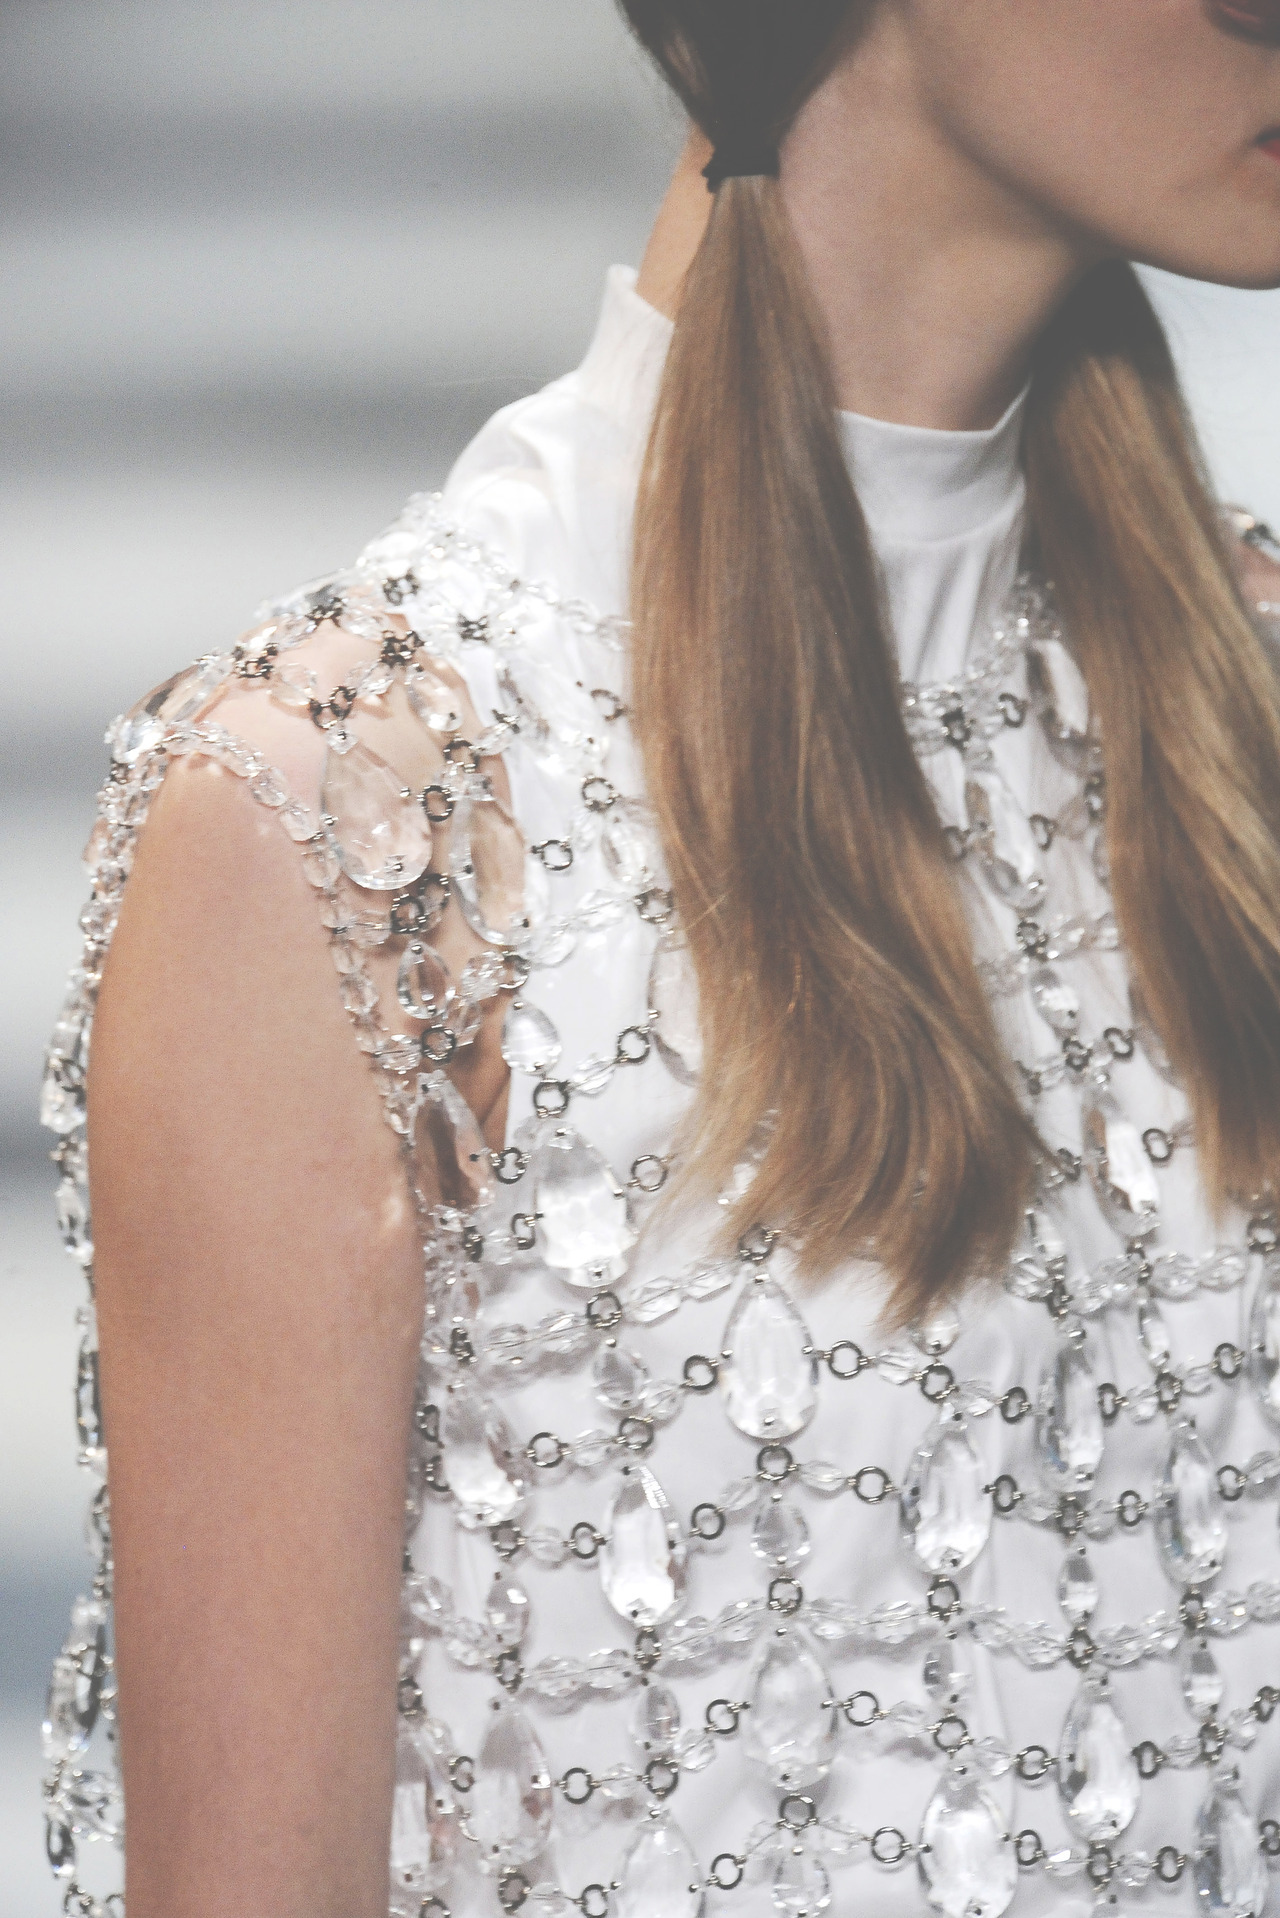 somethingvain:  prada s/s 2010 rtw, details at milan fashion week